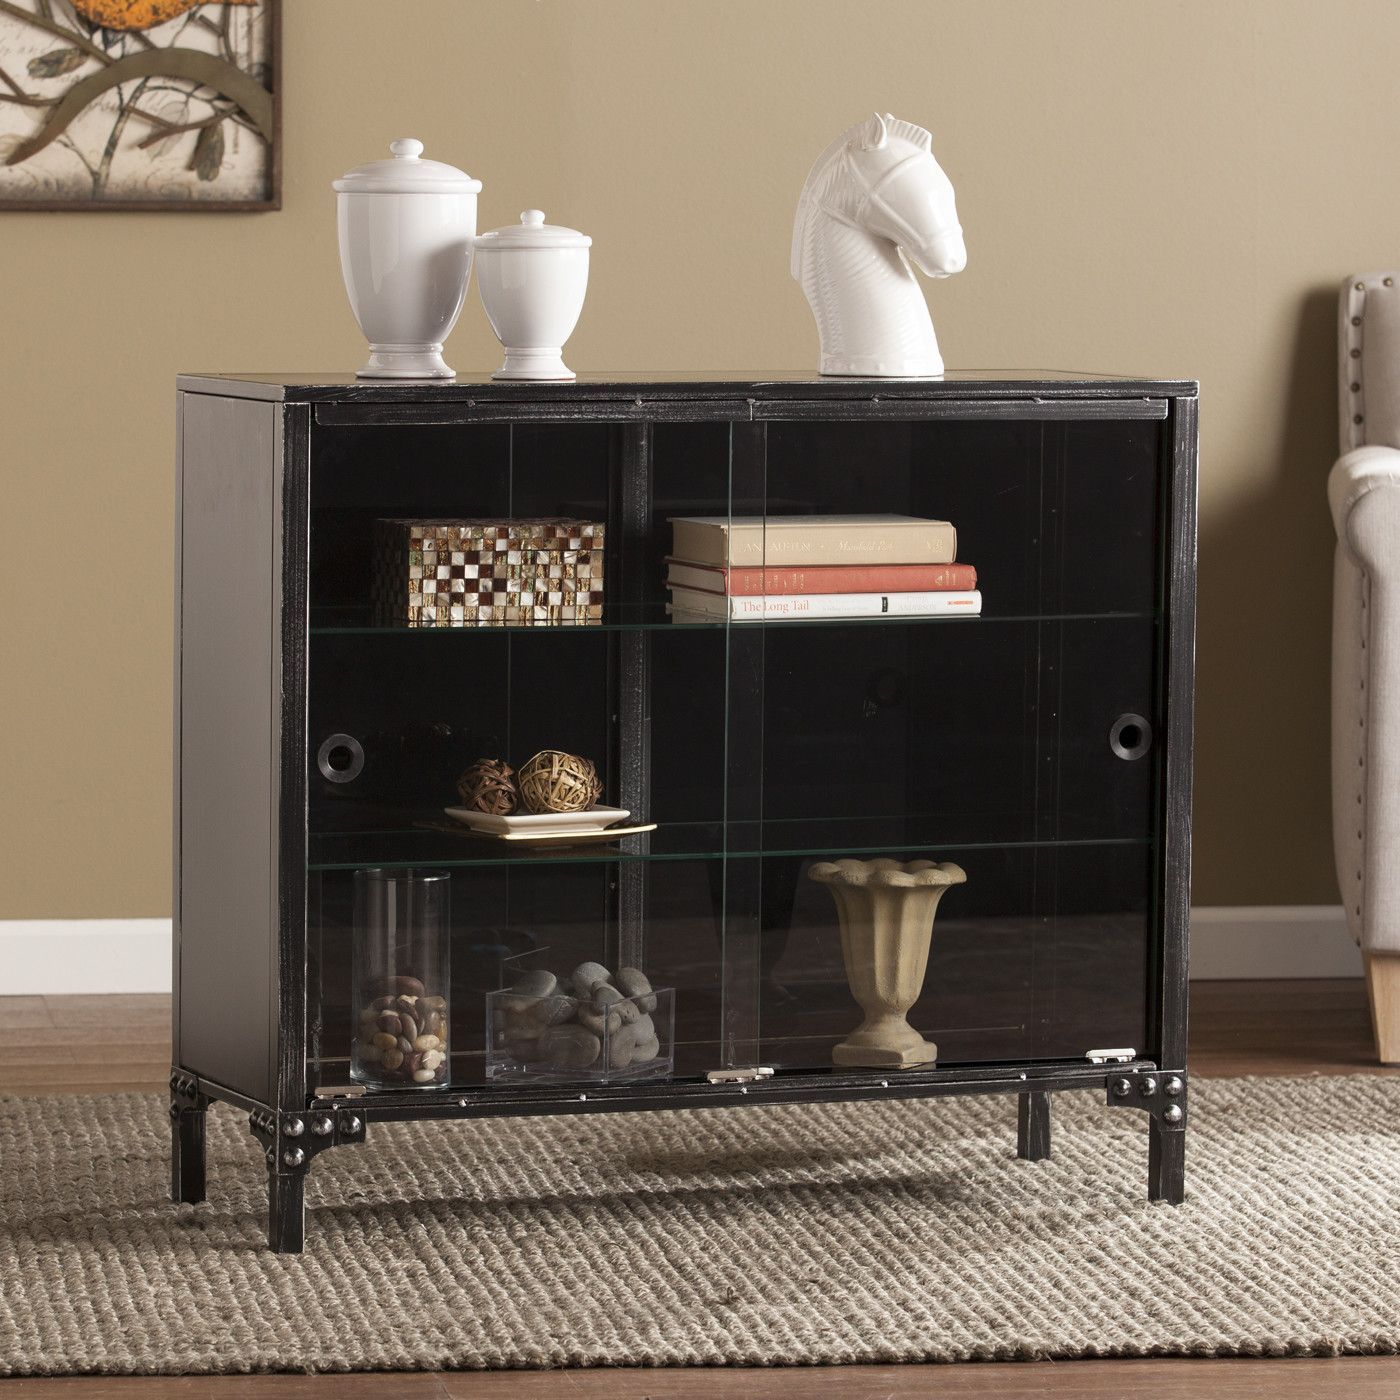 Storage cabinet products pinterest storage cabinets and products